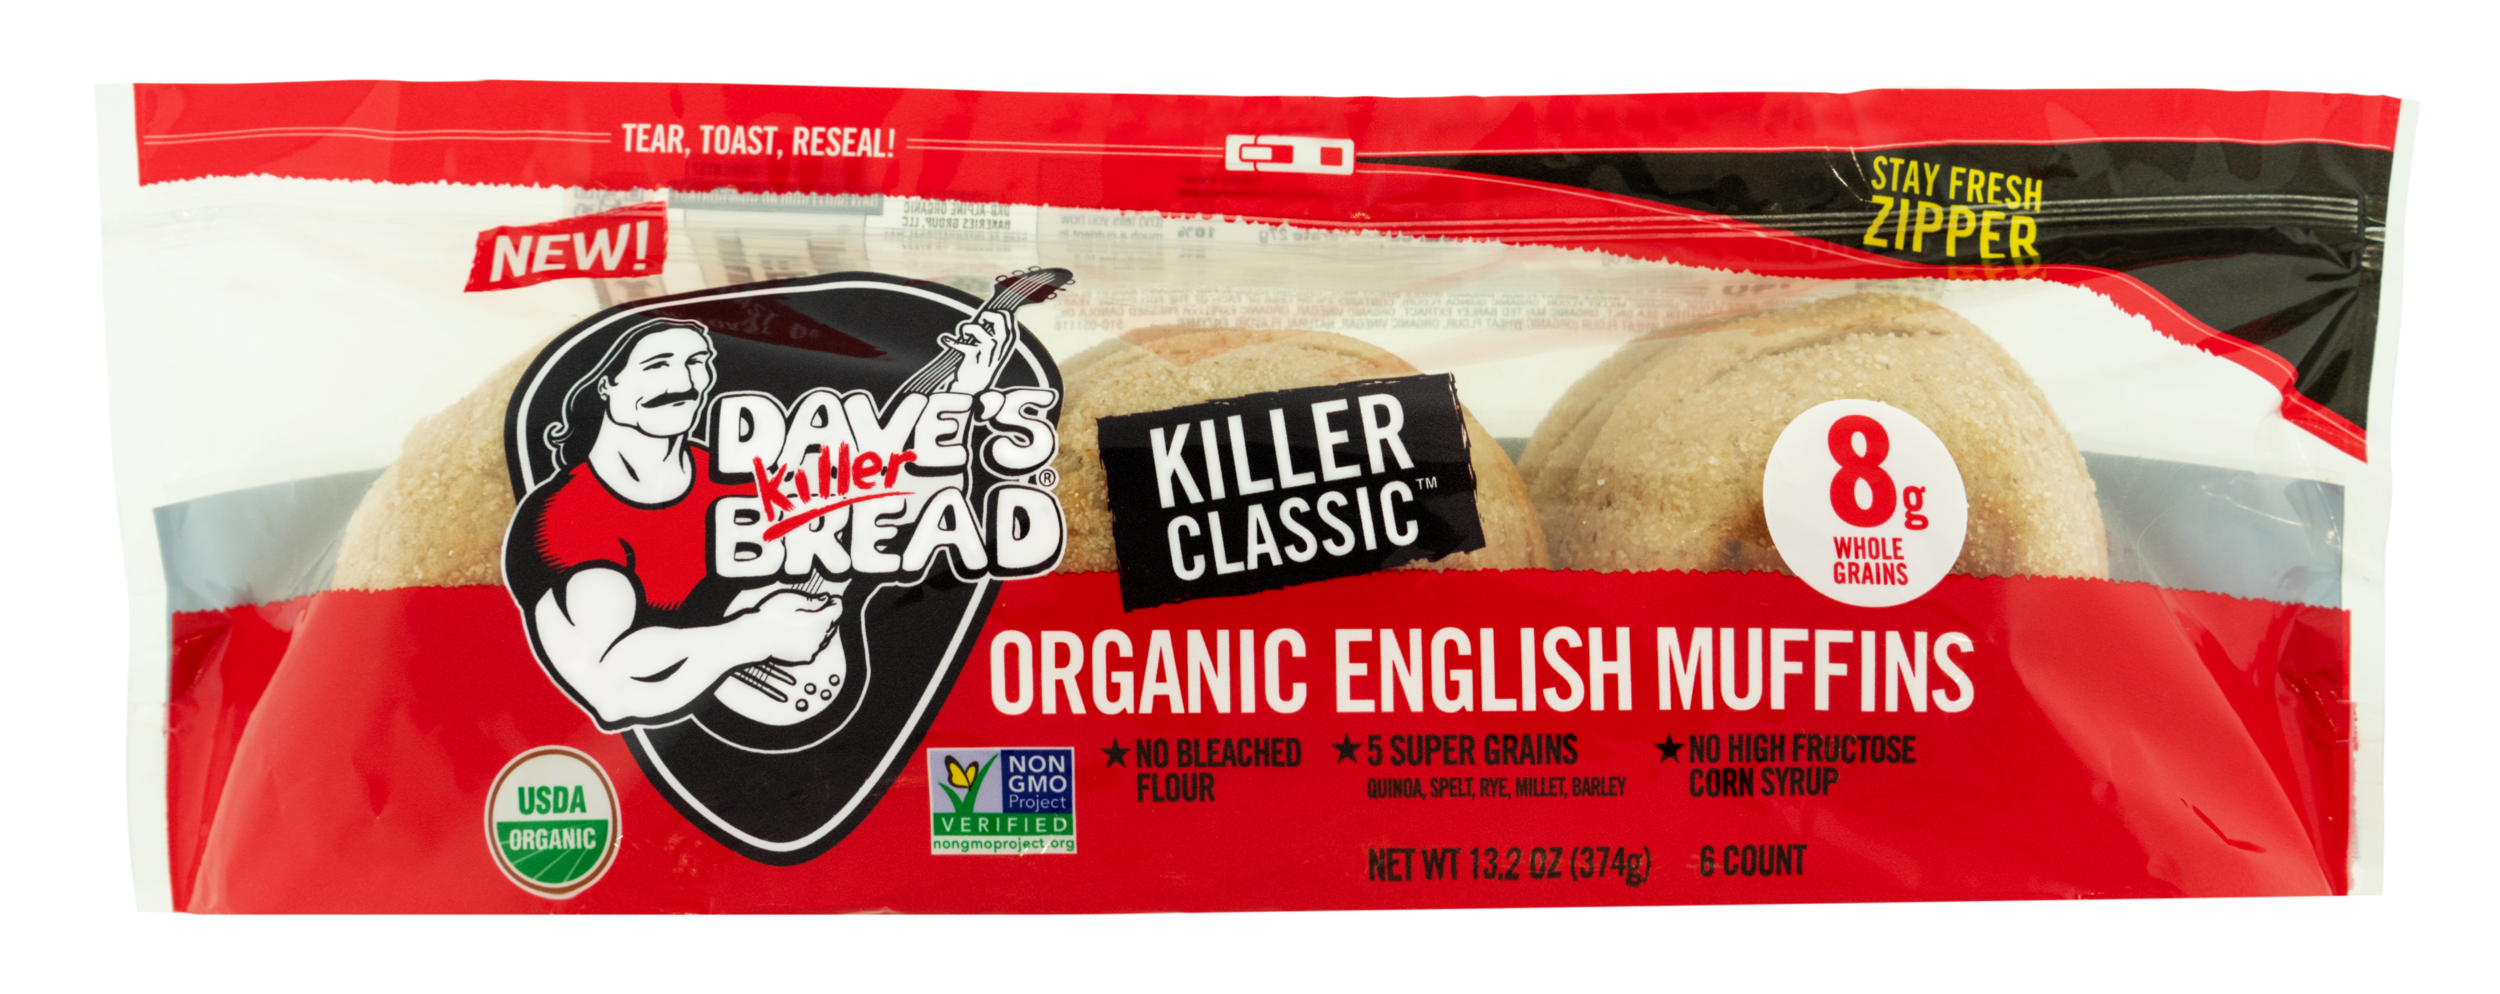 KILLER. ROCKIN'. MUFFINS. - Power-packed with 5 super grains (quinoa, spelt, rye, millet and barley), with no bleached flour or high fructose corn syrup, they're killer awesome!